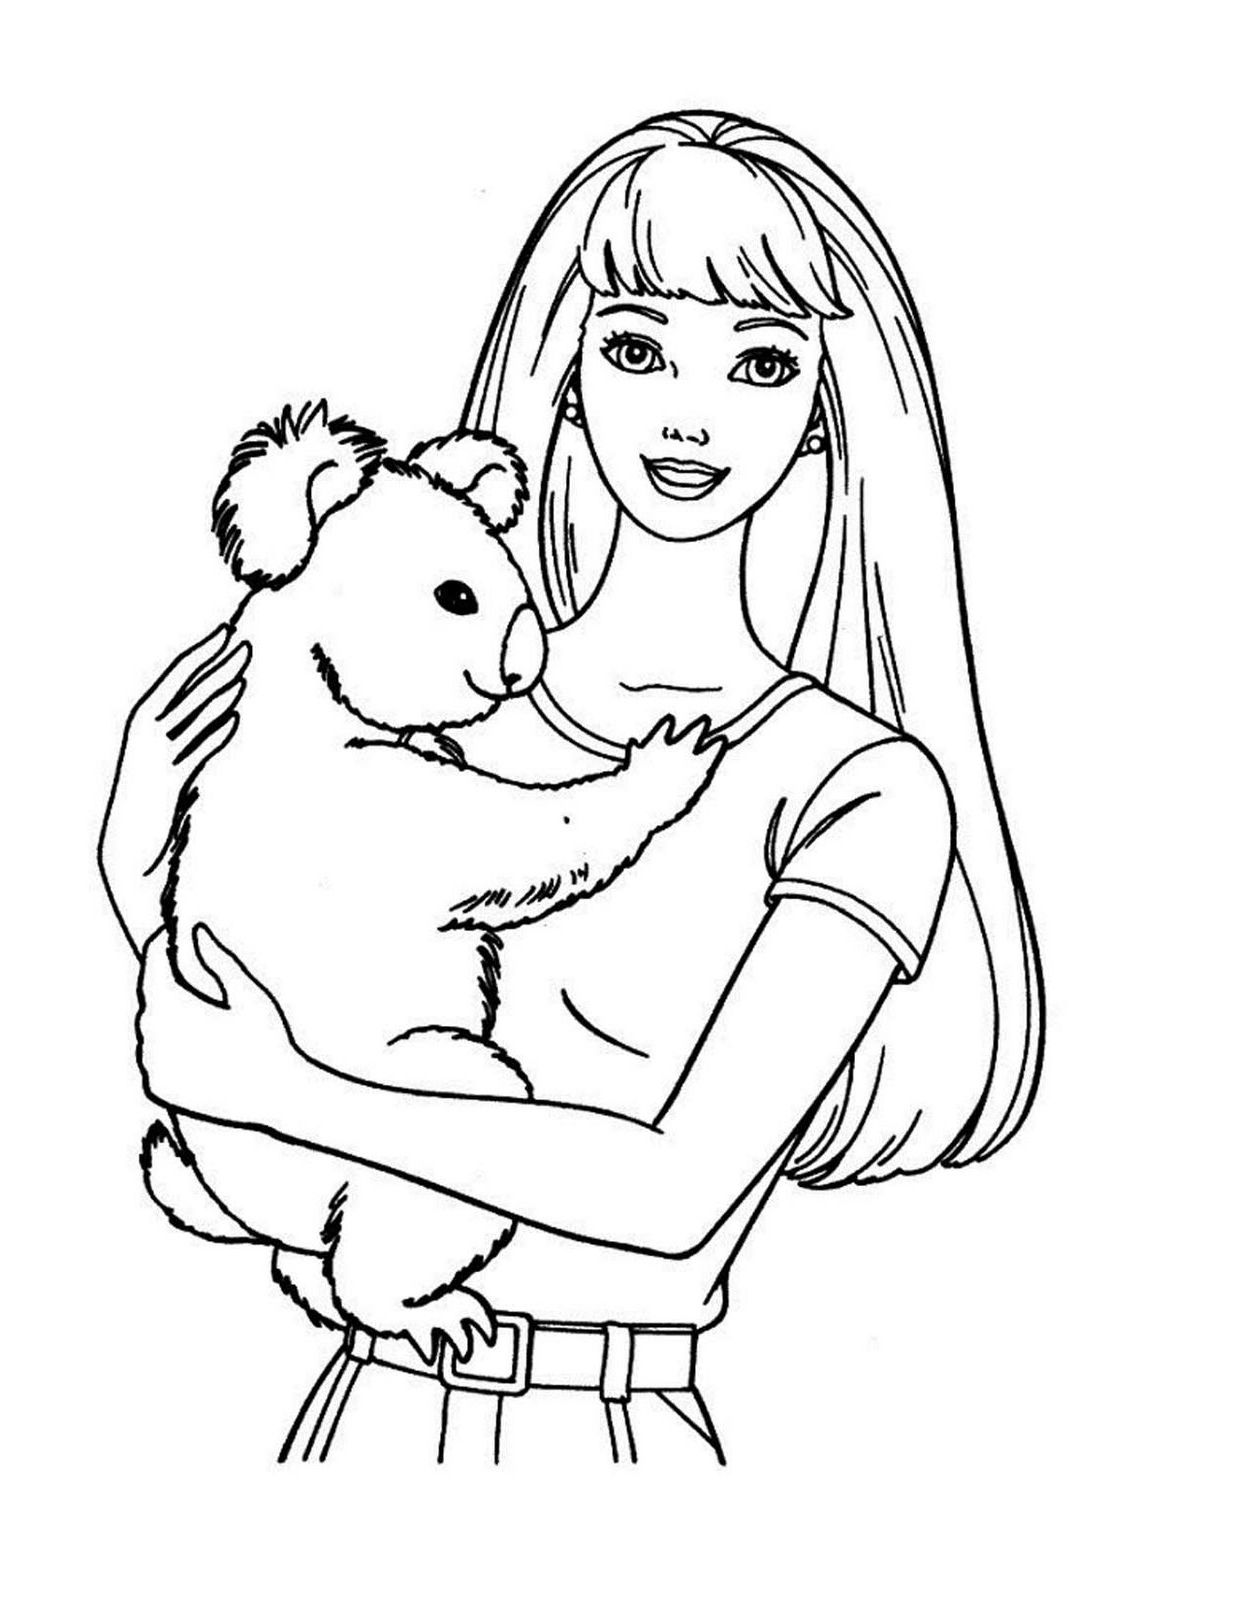 Barbie coloring pages printable sheet coloring pages to print